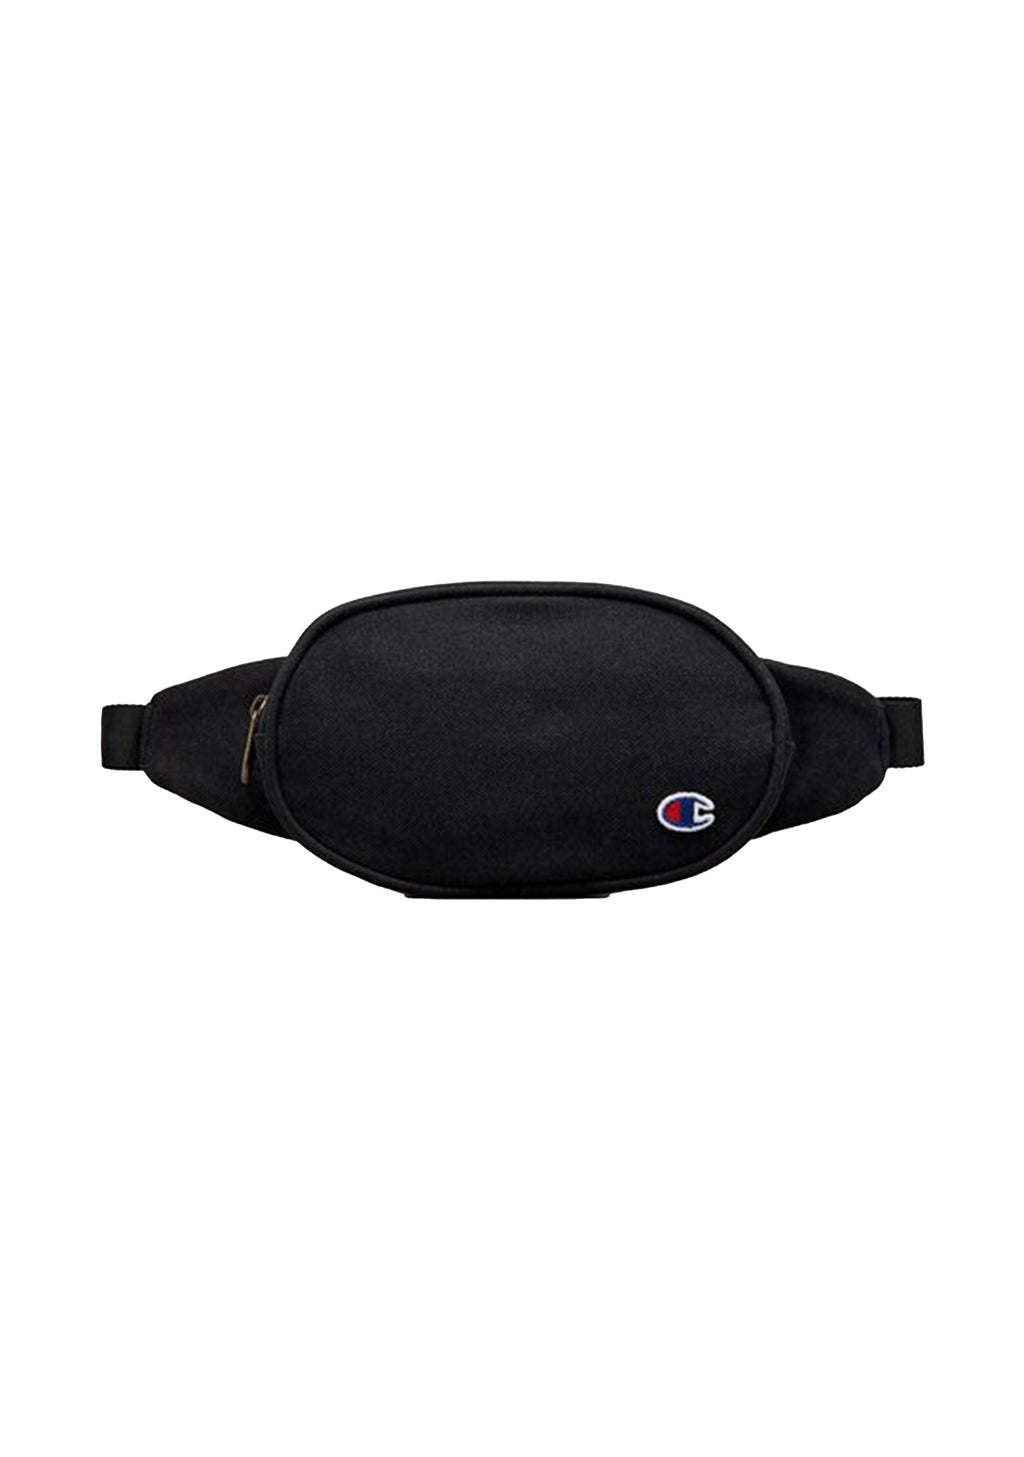 CHAMPION C LOGO WAISTBAG <br> ZYWA1